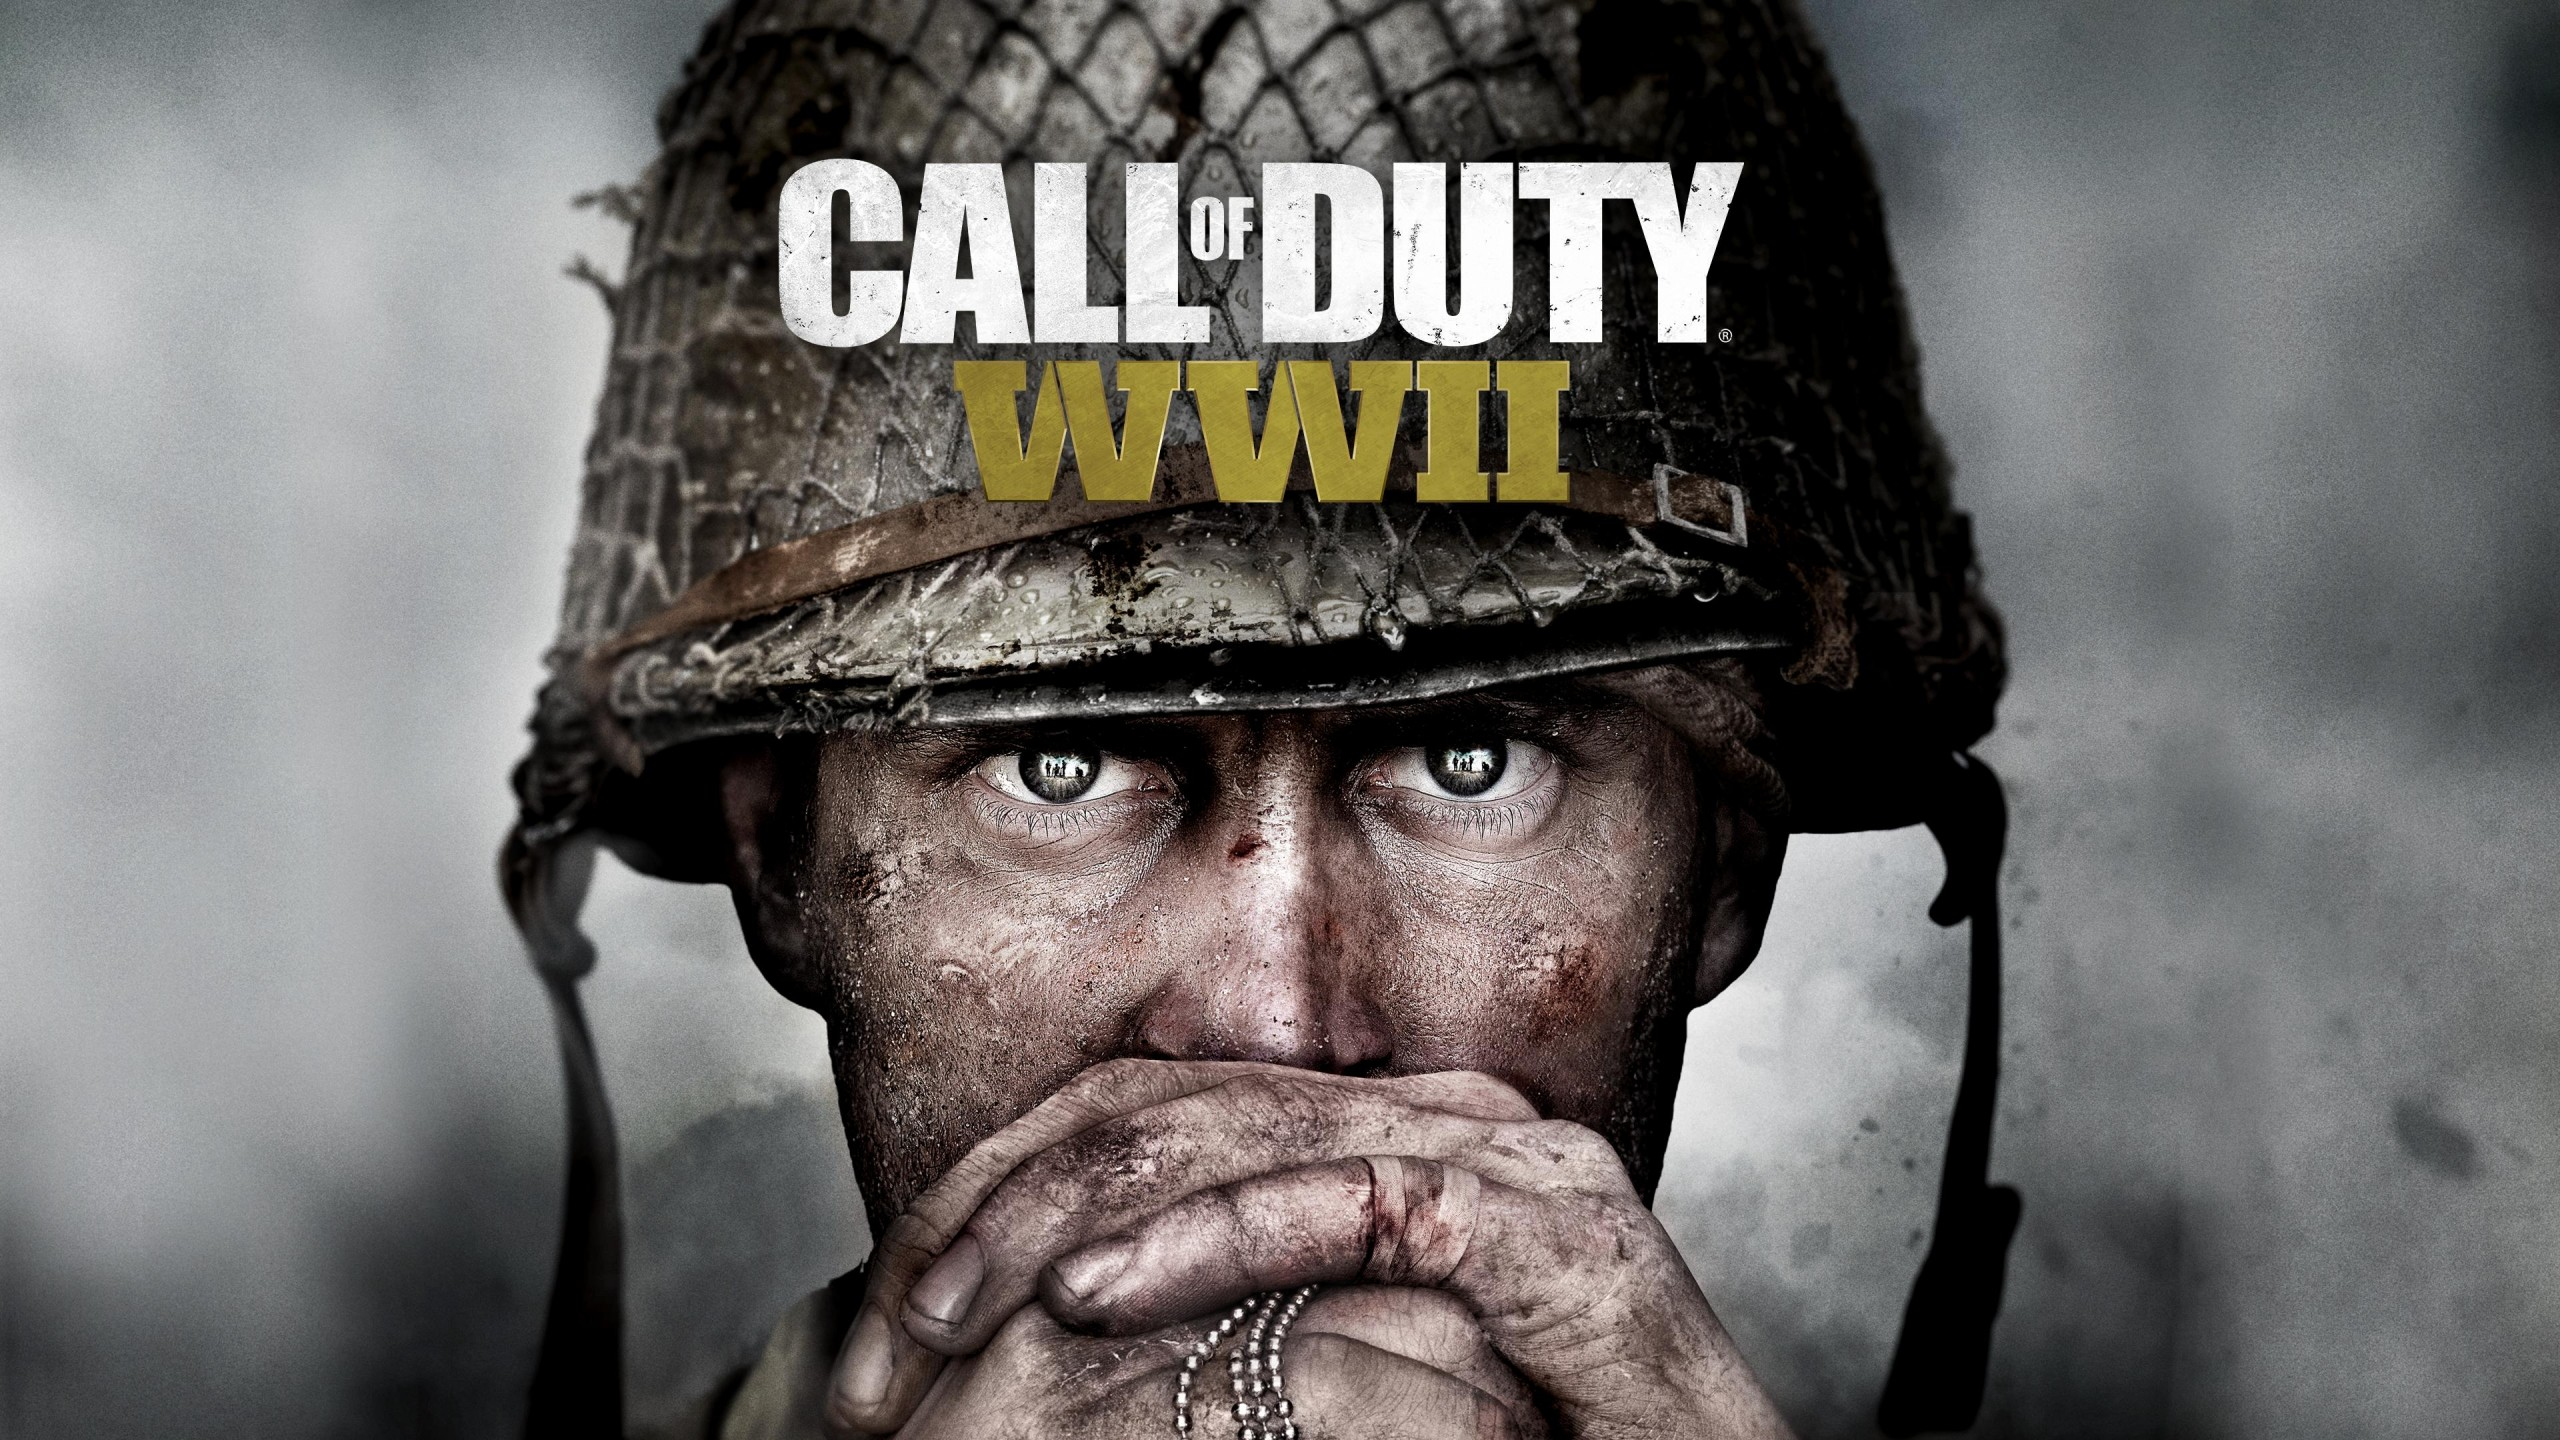 CALL OF DUTY: WWII-RELOADED